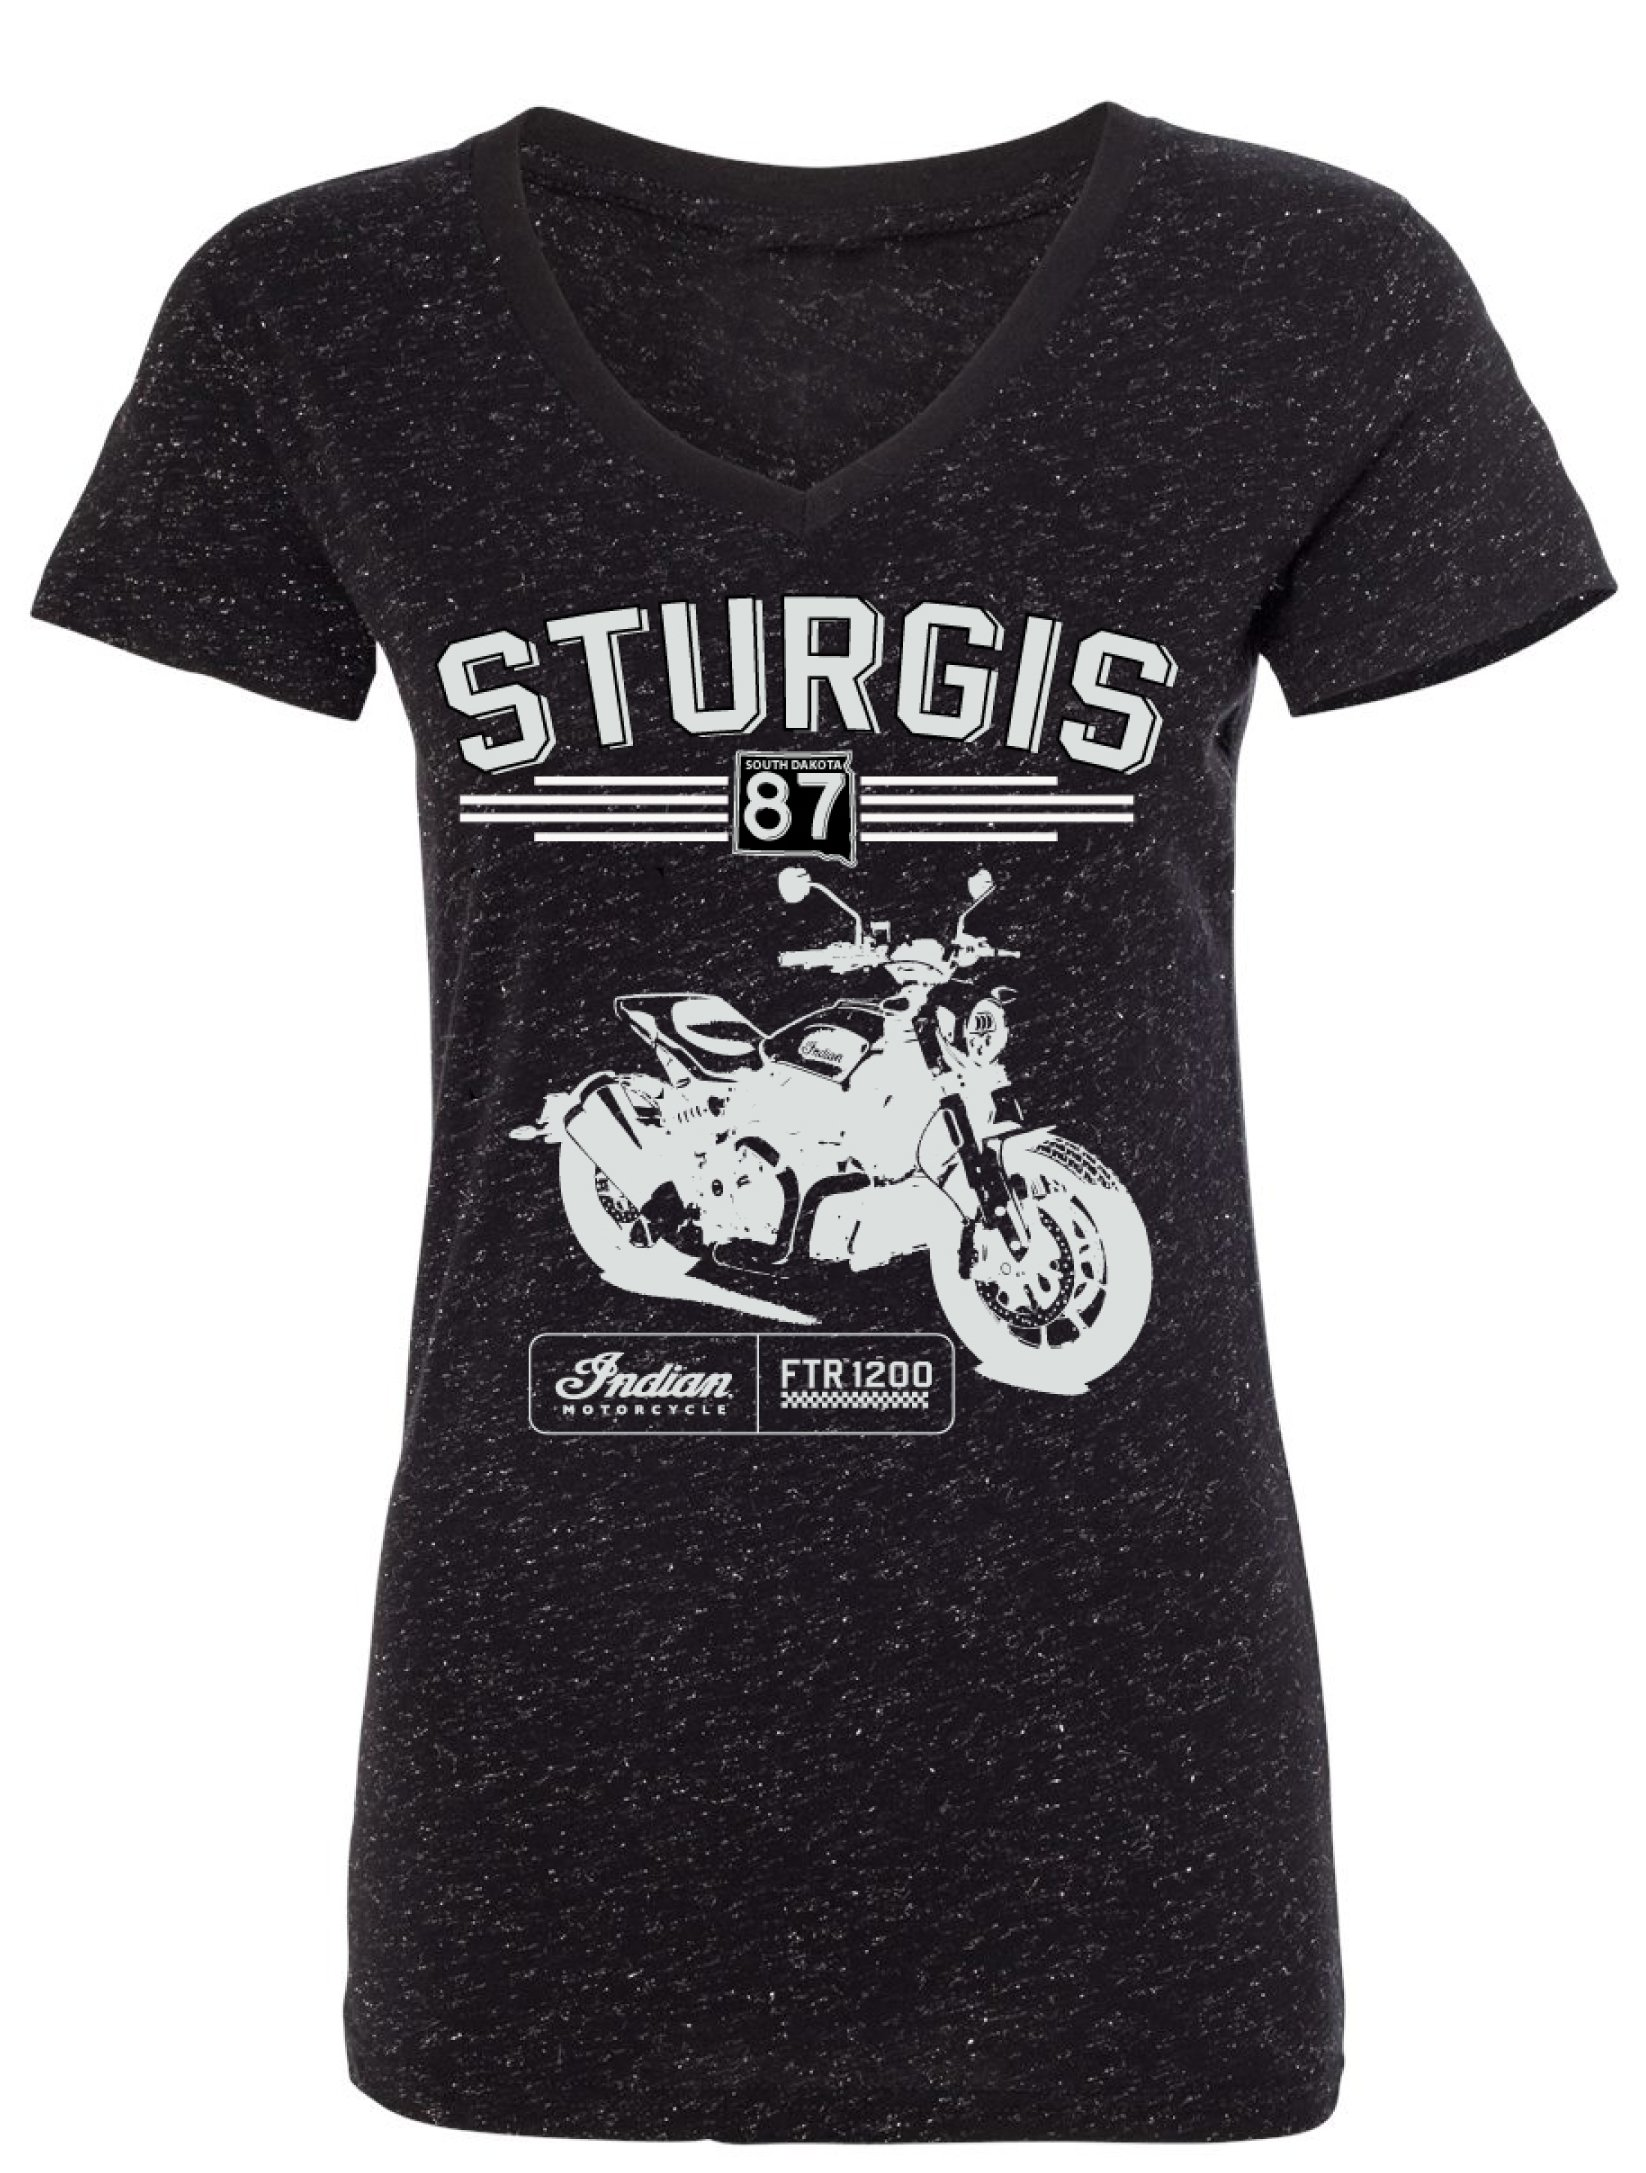 Indian Motorcycle Sturgis Ladies V-neck FTR Black Tee with Silver Sparkle